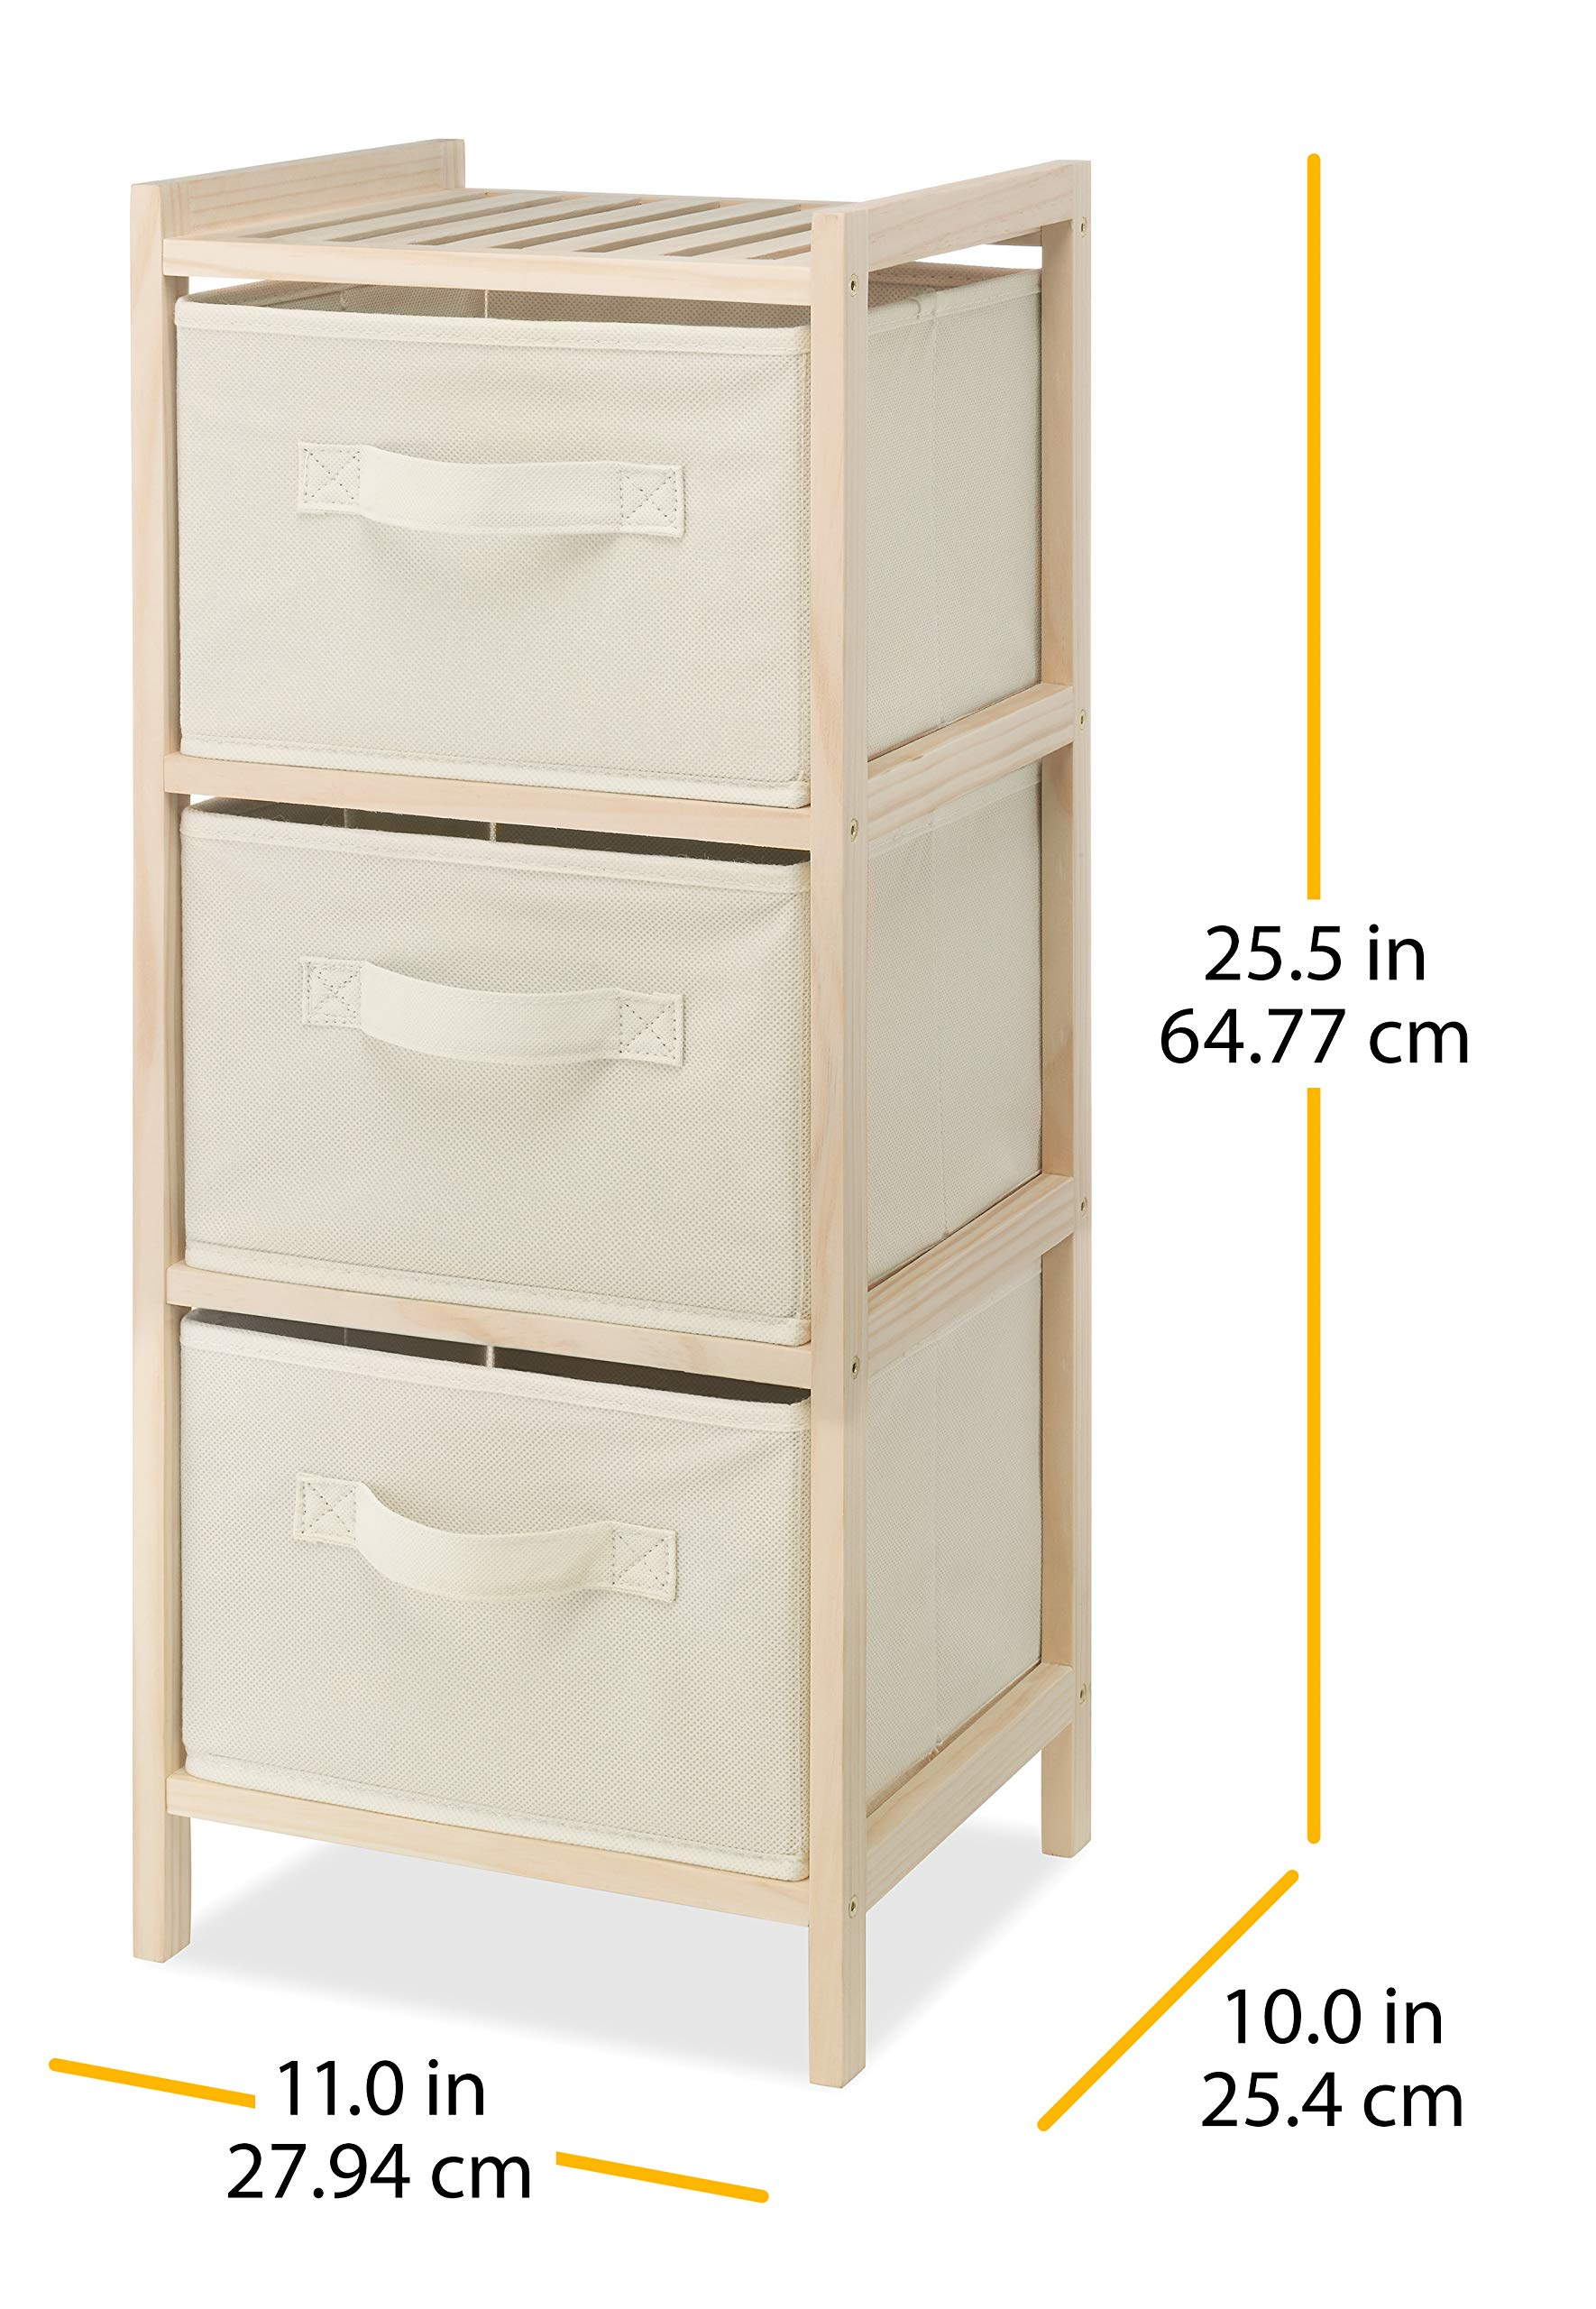 Whitmor 3 Drawer Wood Chest - Compact Design - Pull Out Fabric Bins - Natural Pine by Whitmor (Image #3)